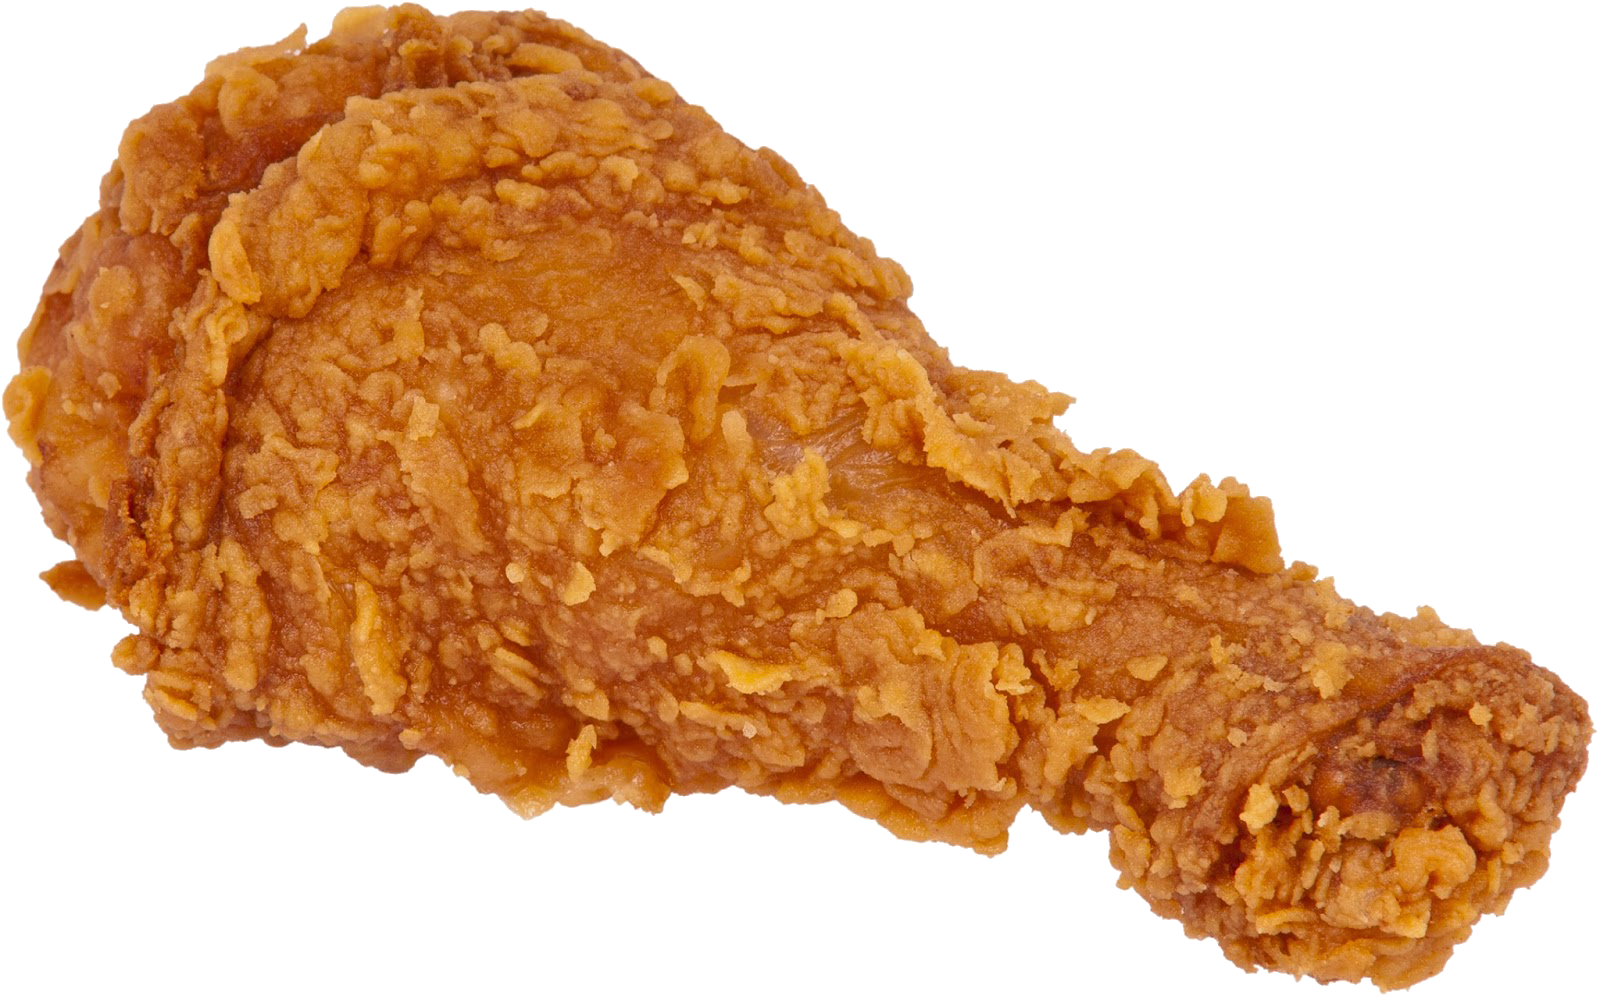 Fried chicken bucket png. Index of img product